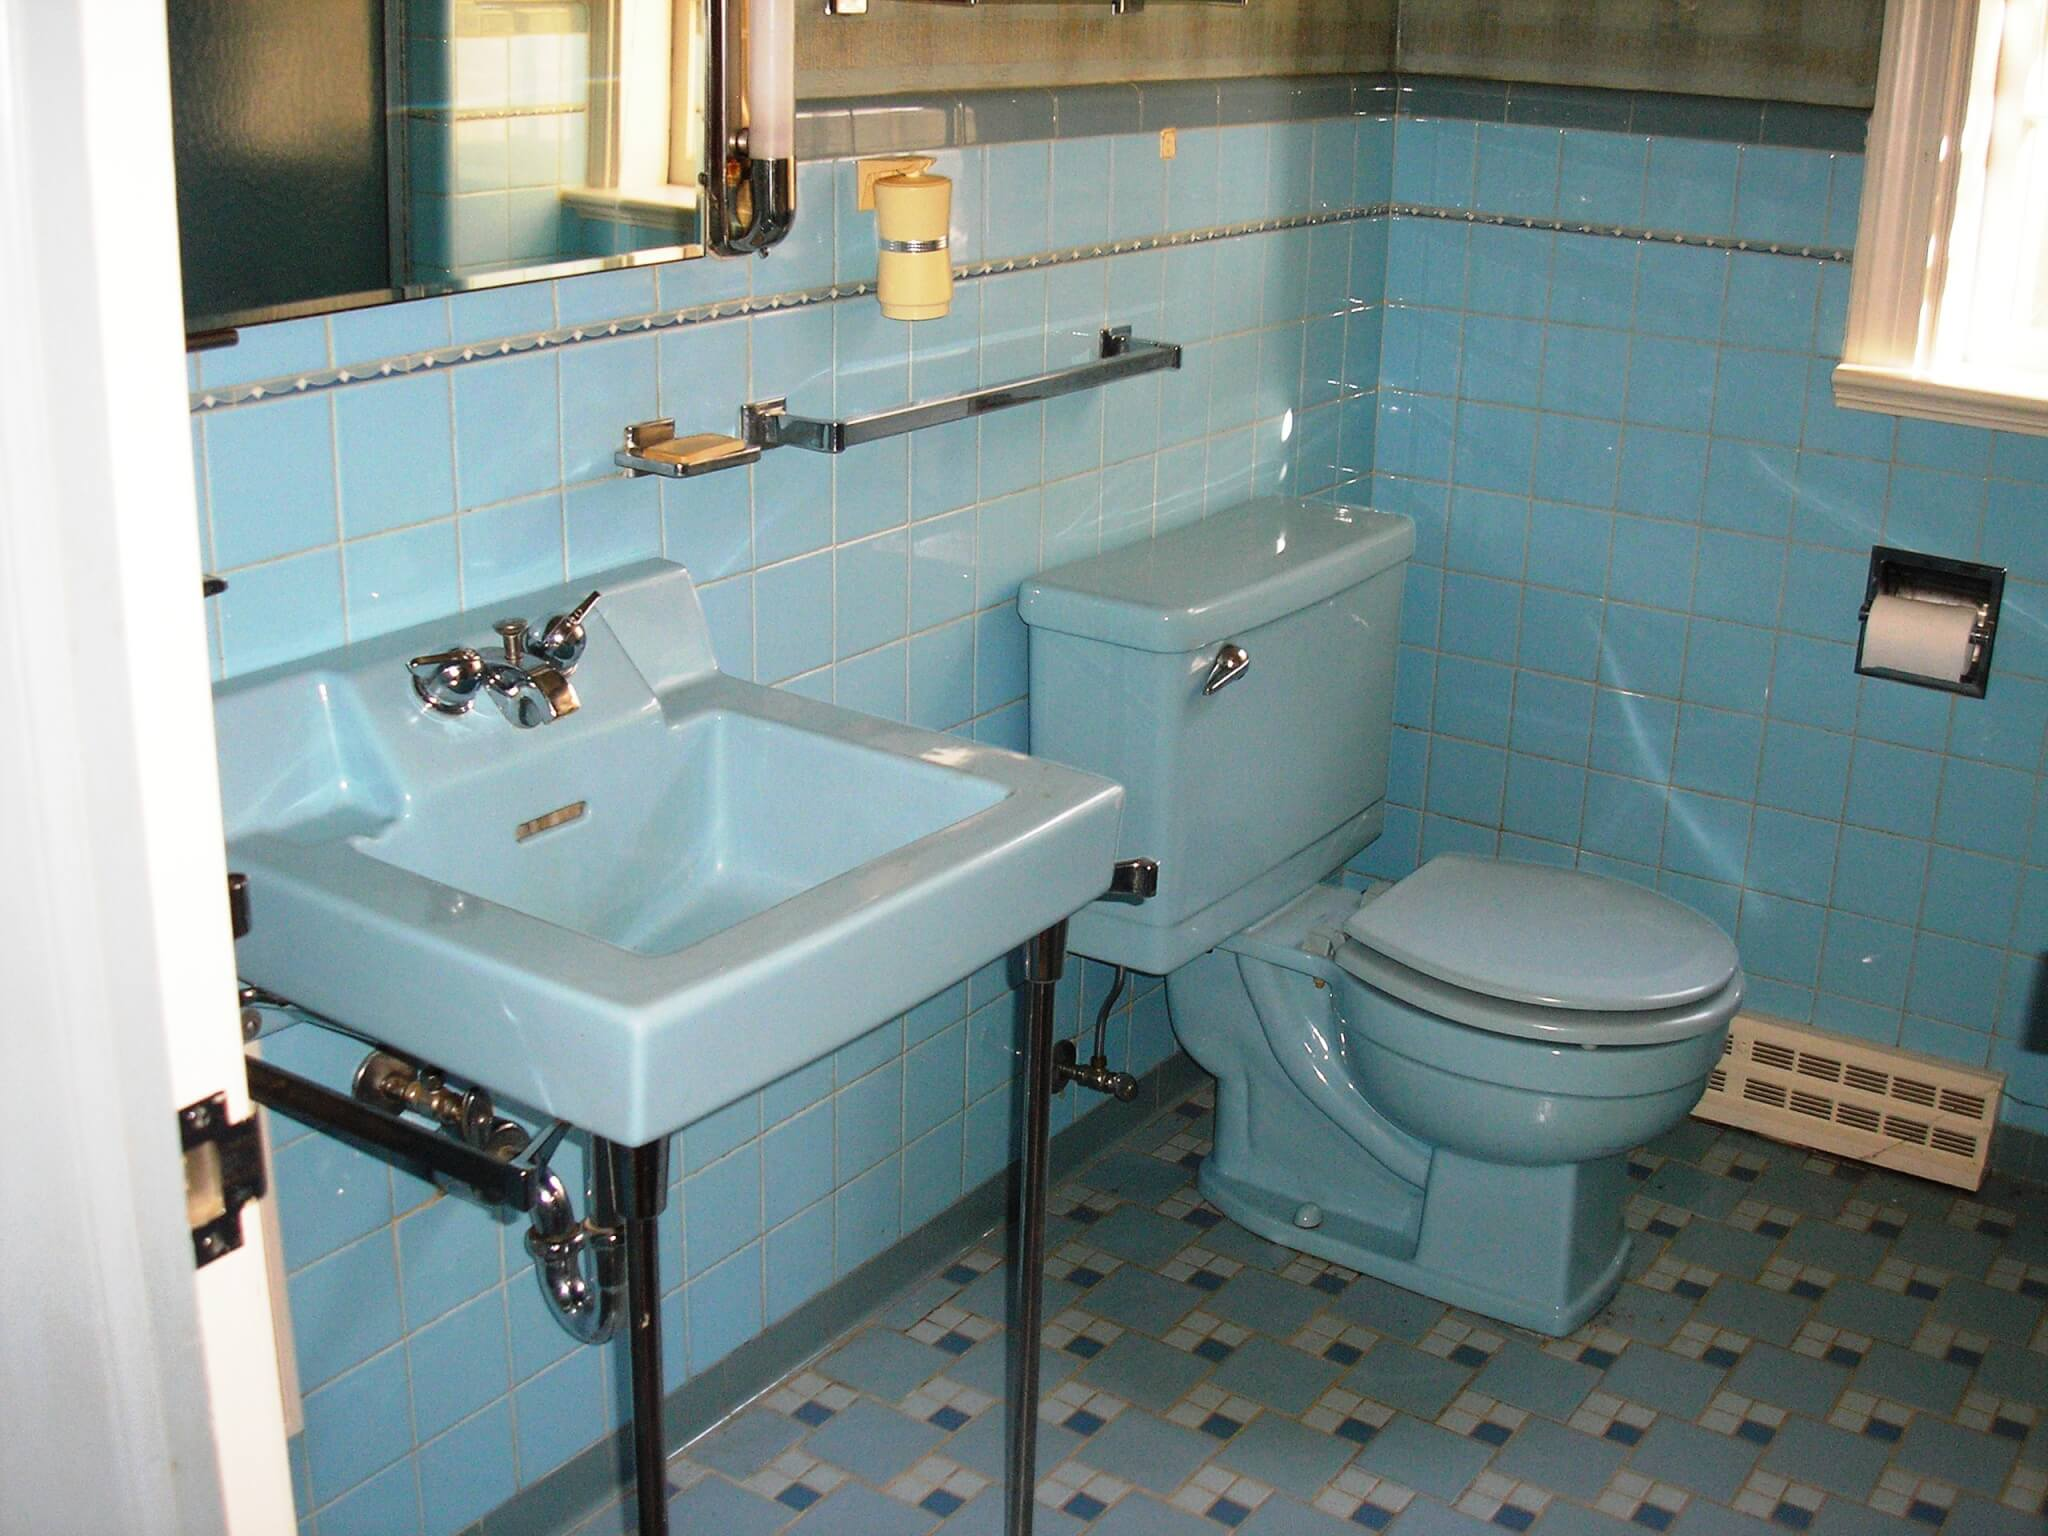 Lawrence Bill asks for more ideas for his 50s bathroom floor - Retro ...